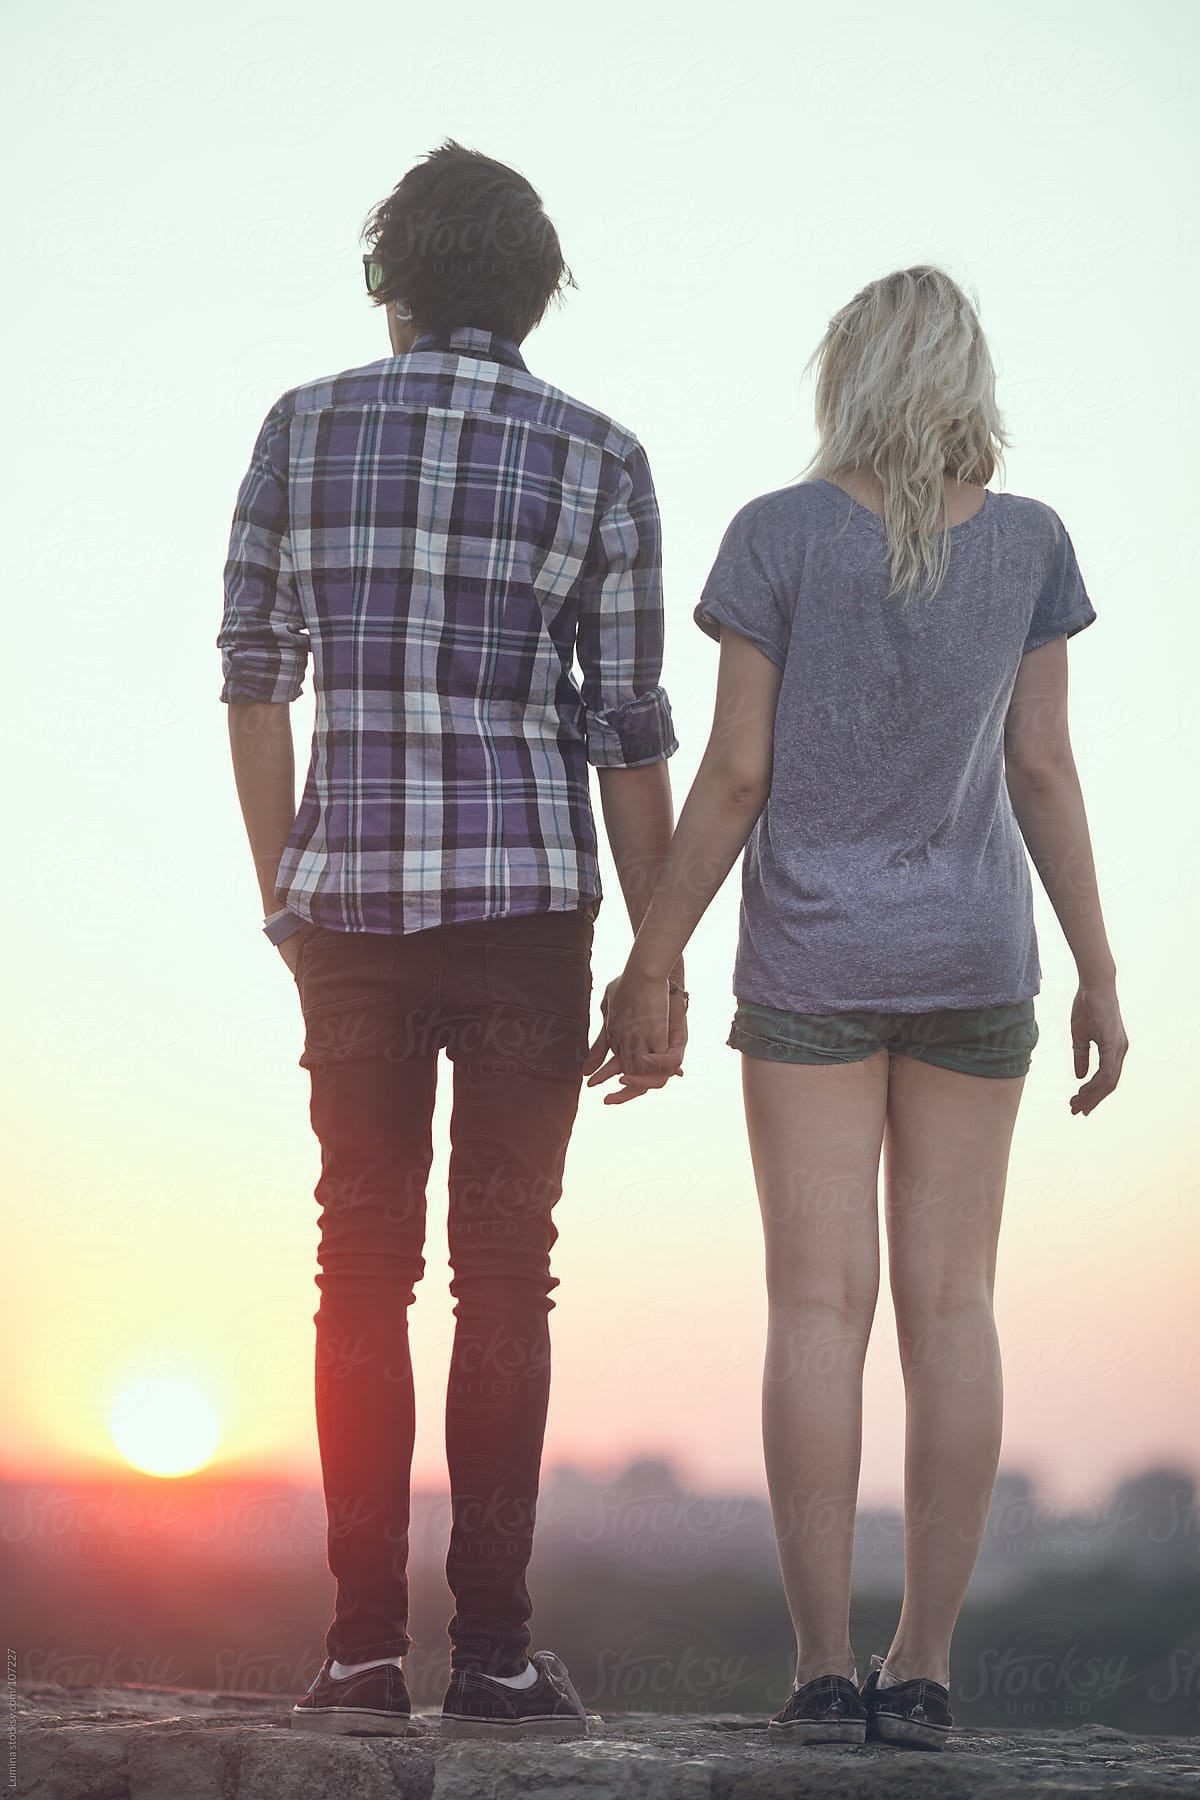 Cute Little Boy And Girl Wallpapers Teenage Couple Holding Hands Stocksy United